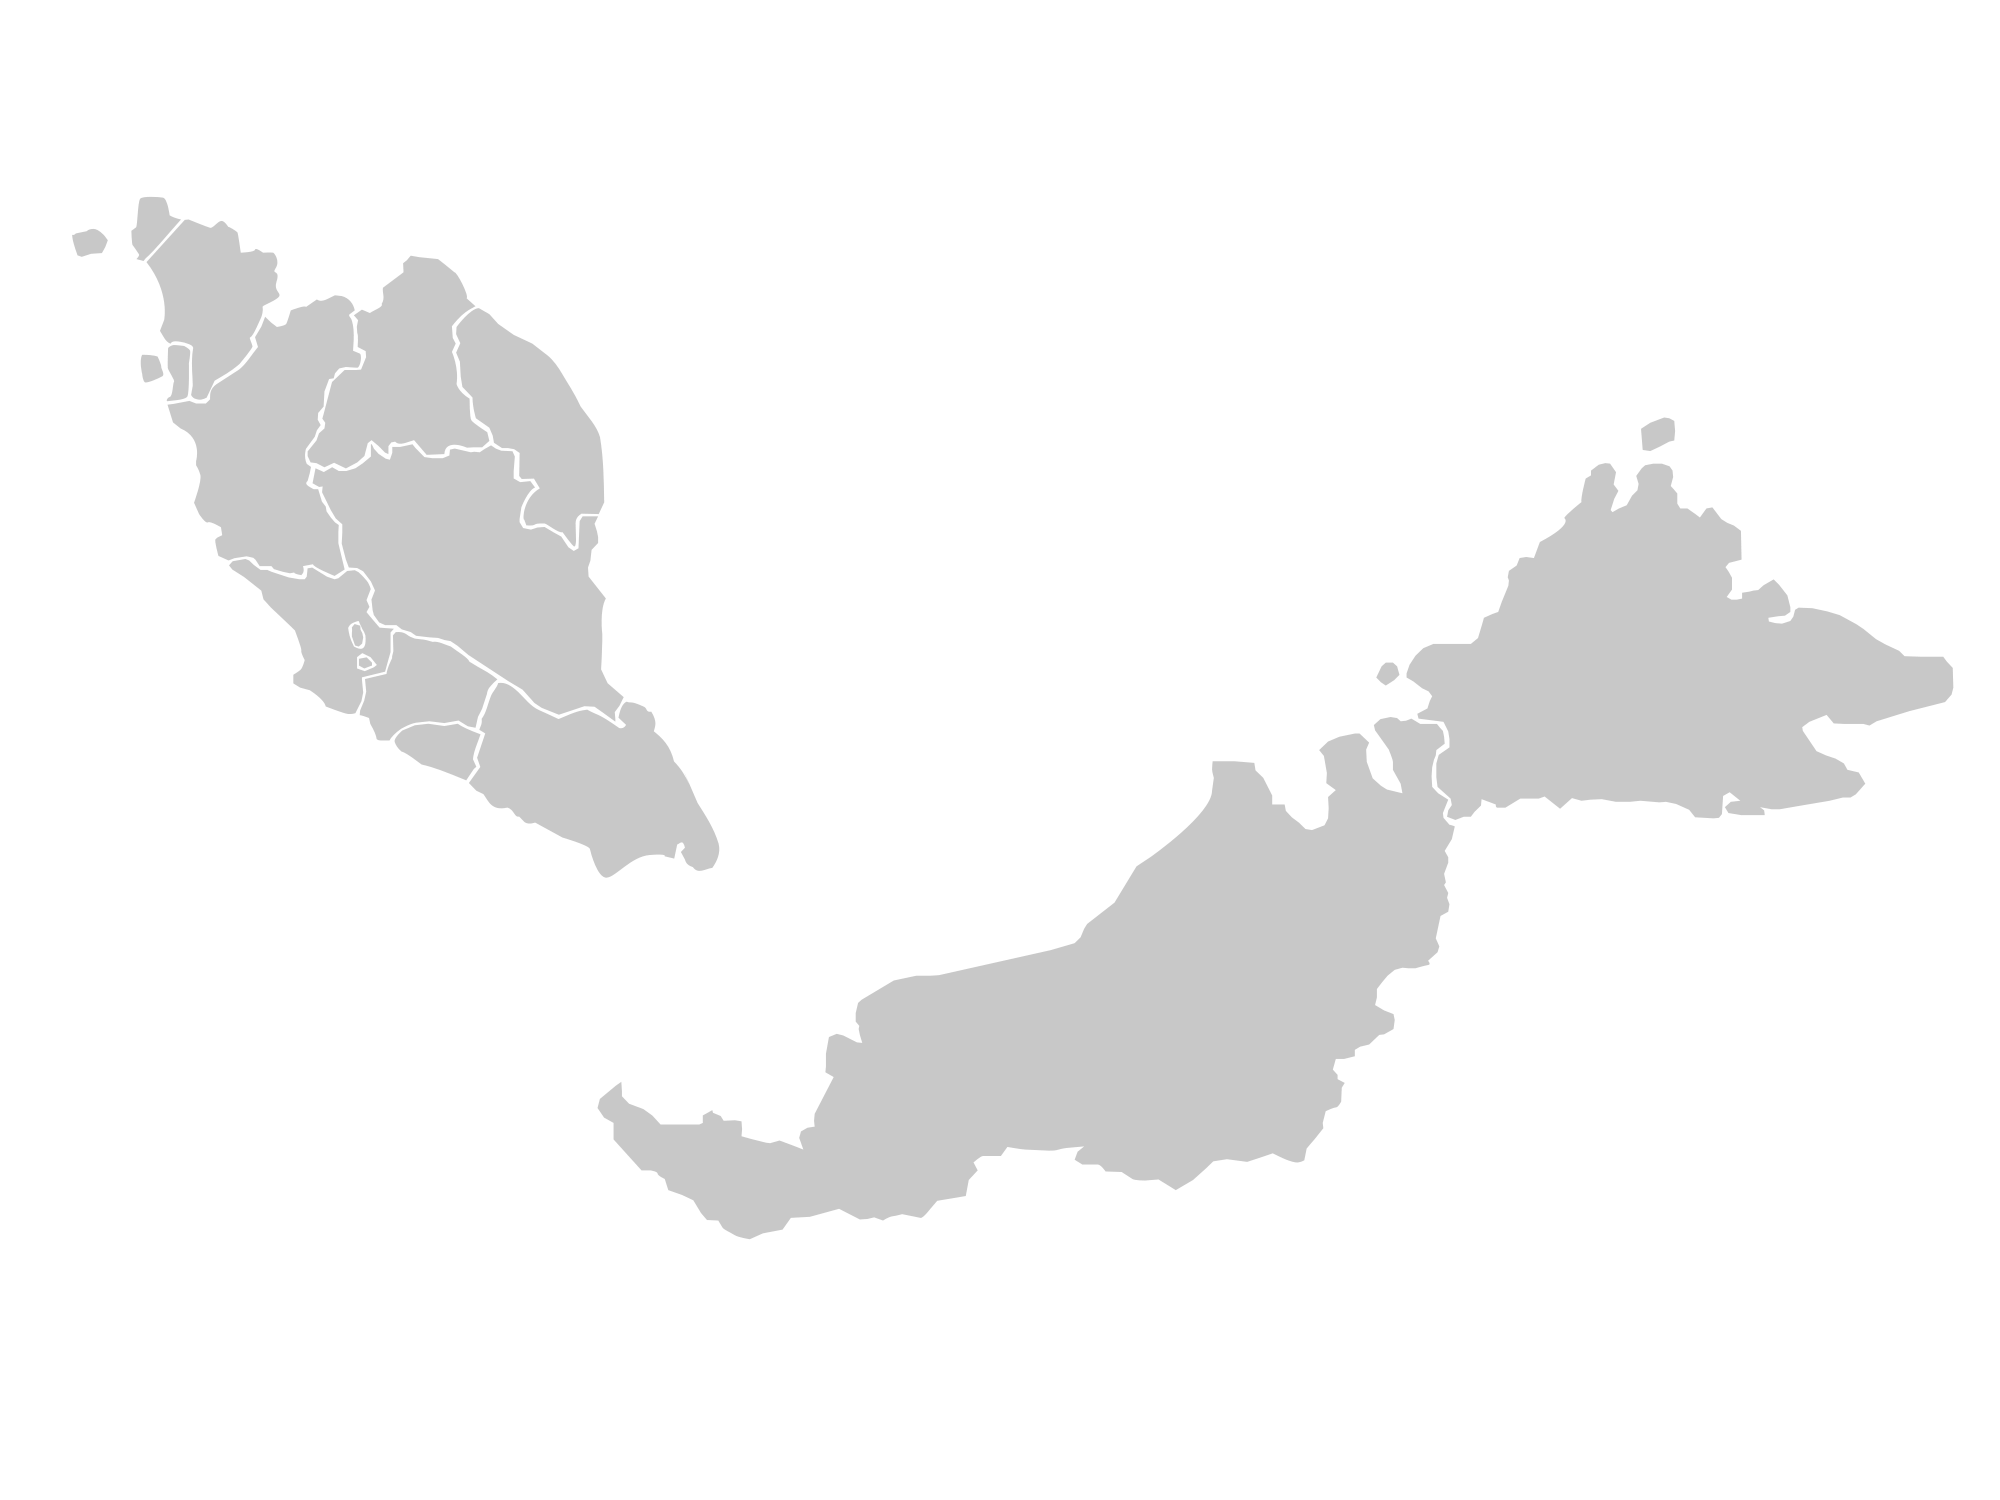 Maps vector blank. File malaysia map svg